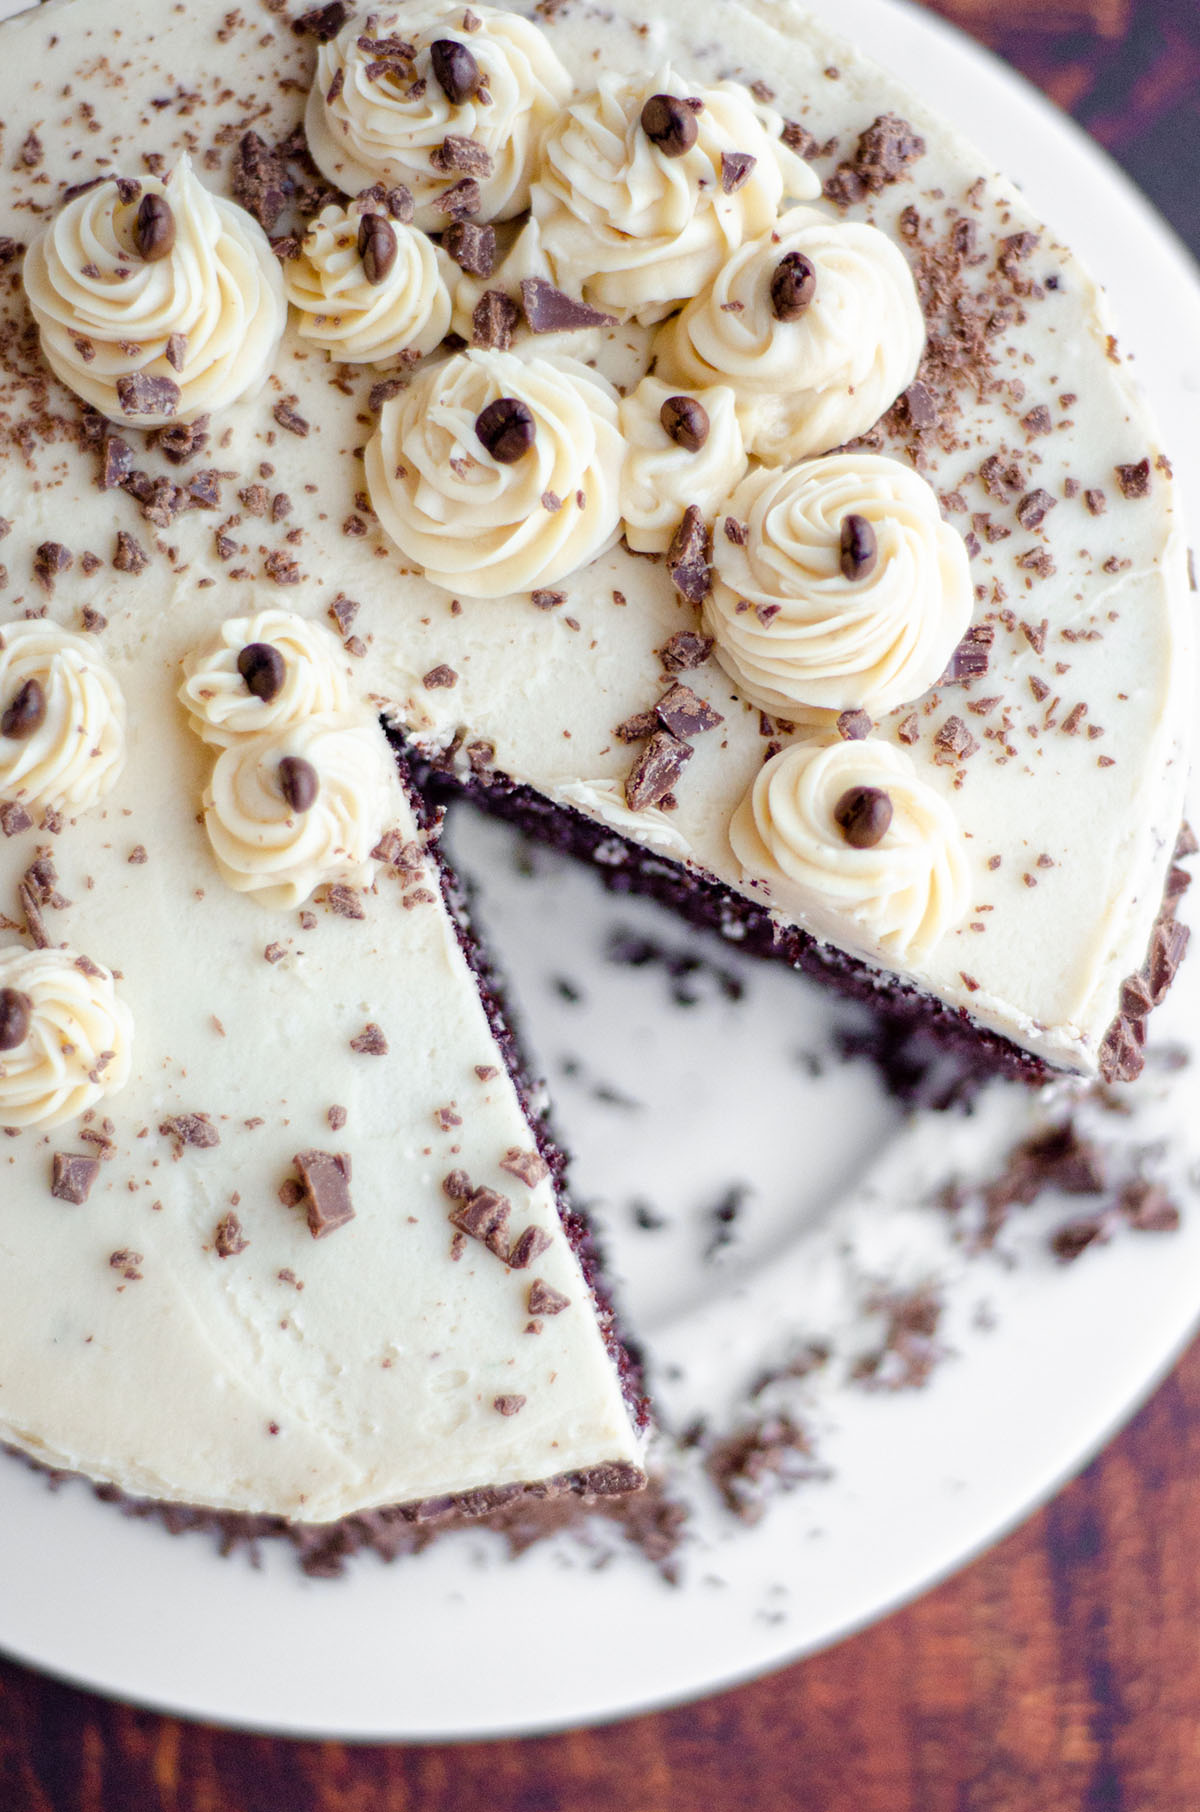 aerial photo of mocha cake with coffee buttercream on a plate with a slice taken out of it